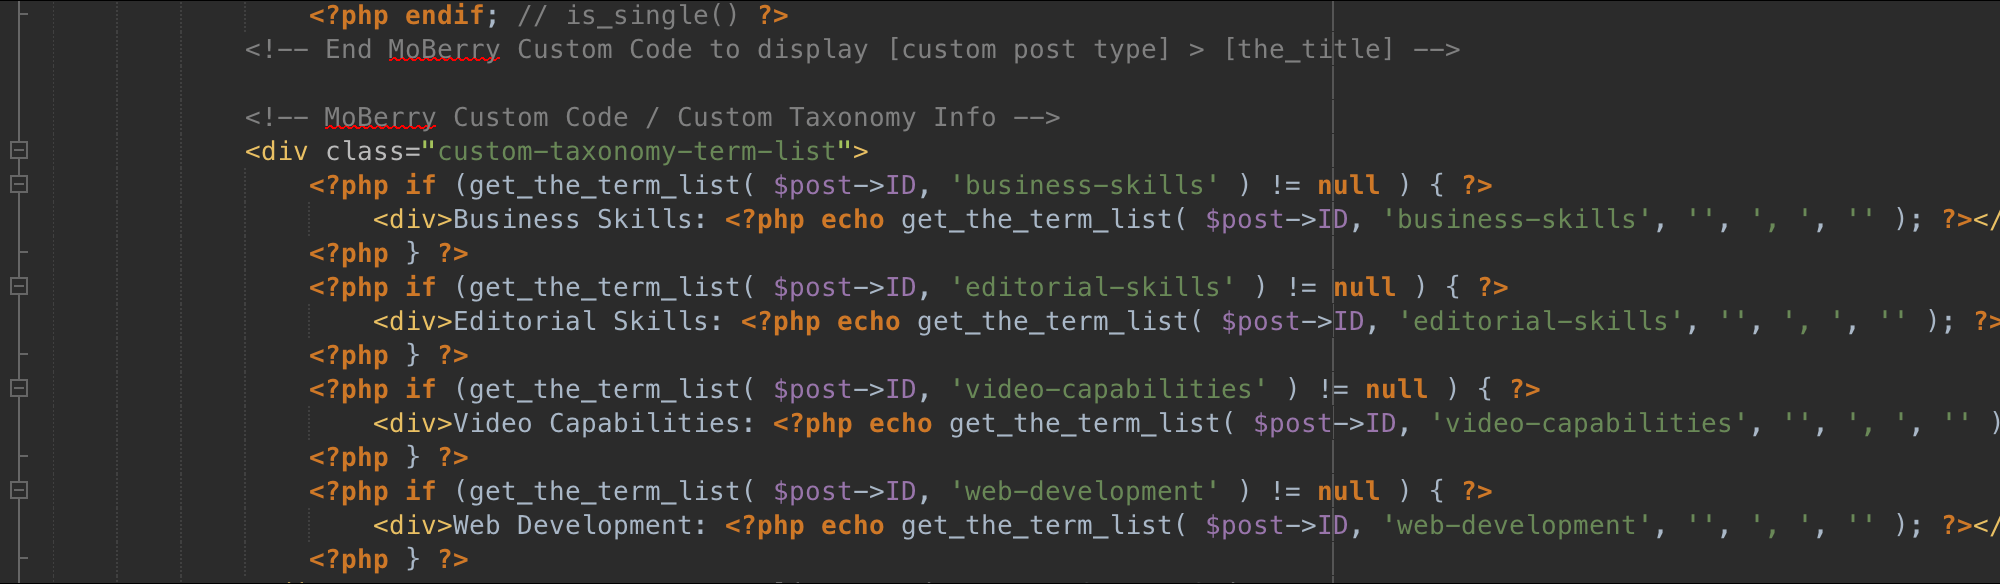 Screenshot: Customized PHP, etc., for a WordPress child theme that is currently in production on massolit-media.com.